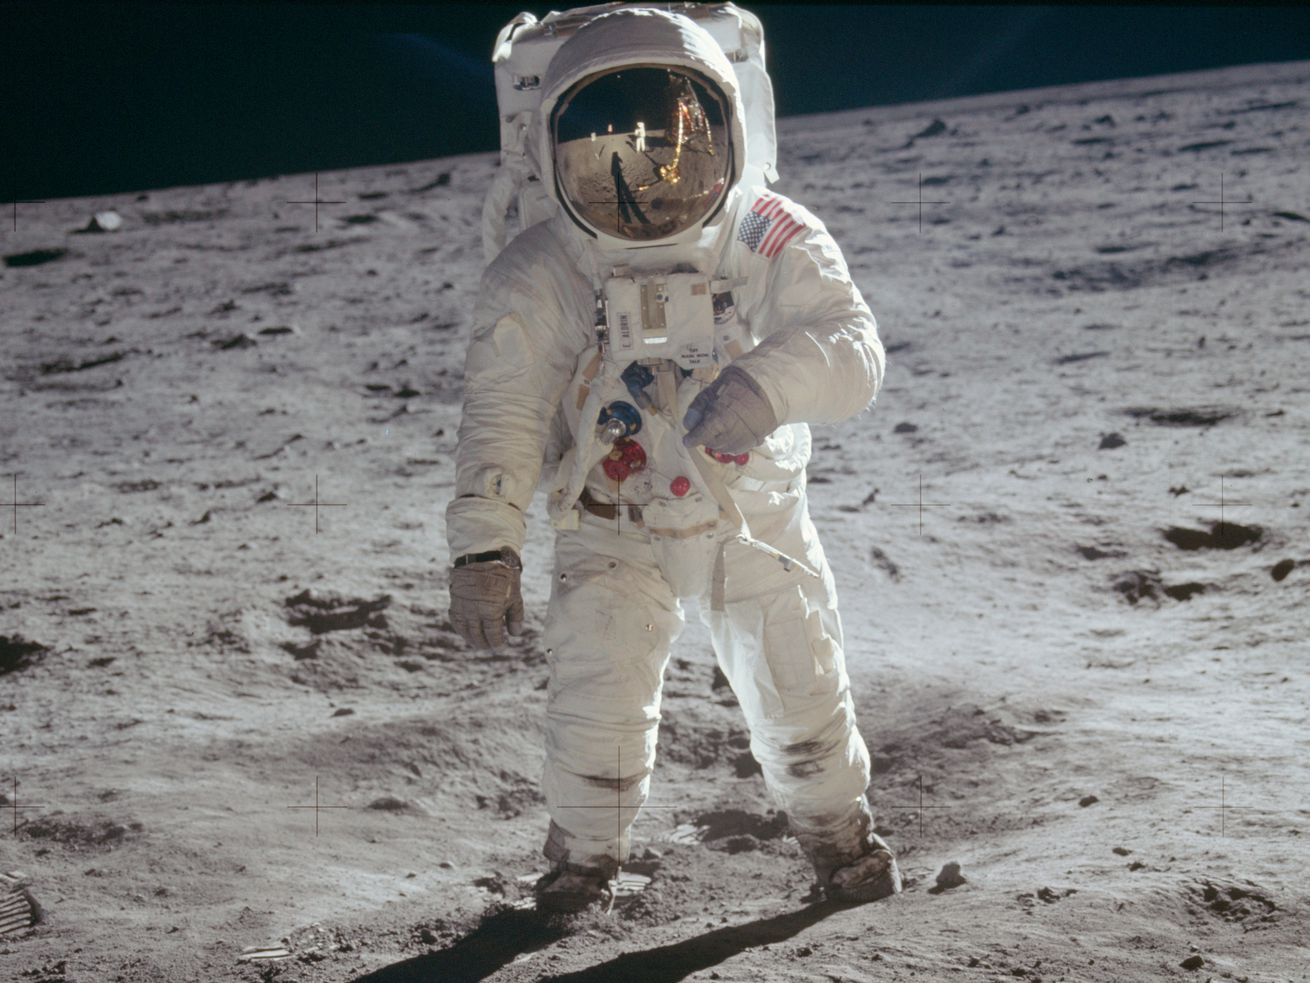 Buzz Aldrin looks at Neil Armstrong during the first moon landing.